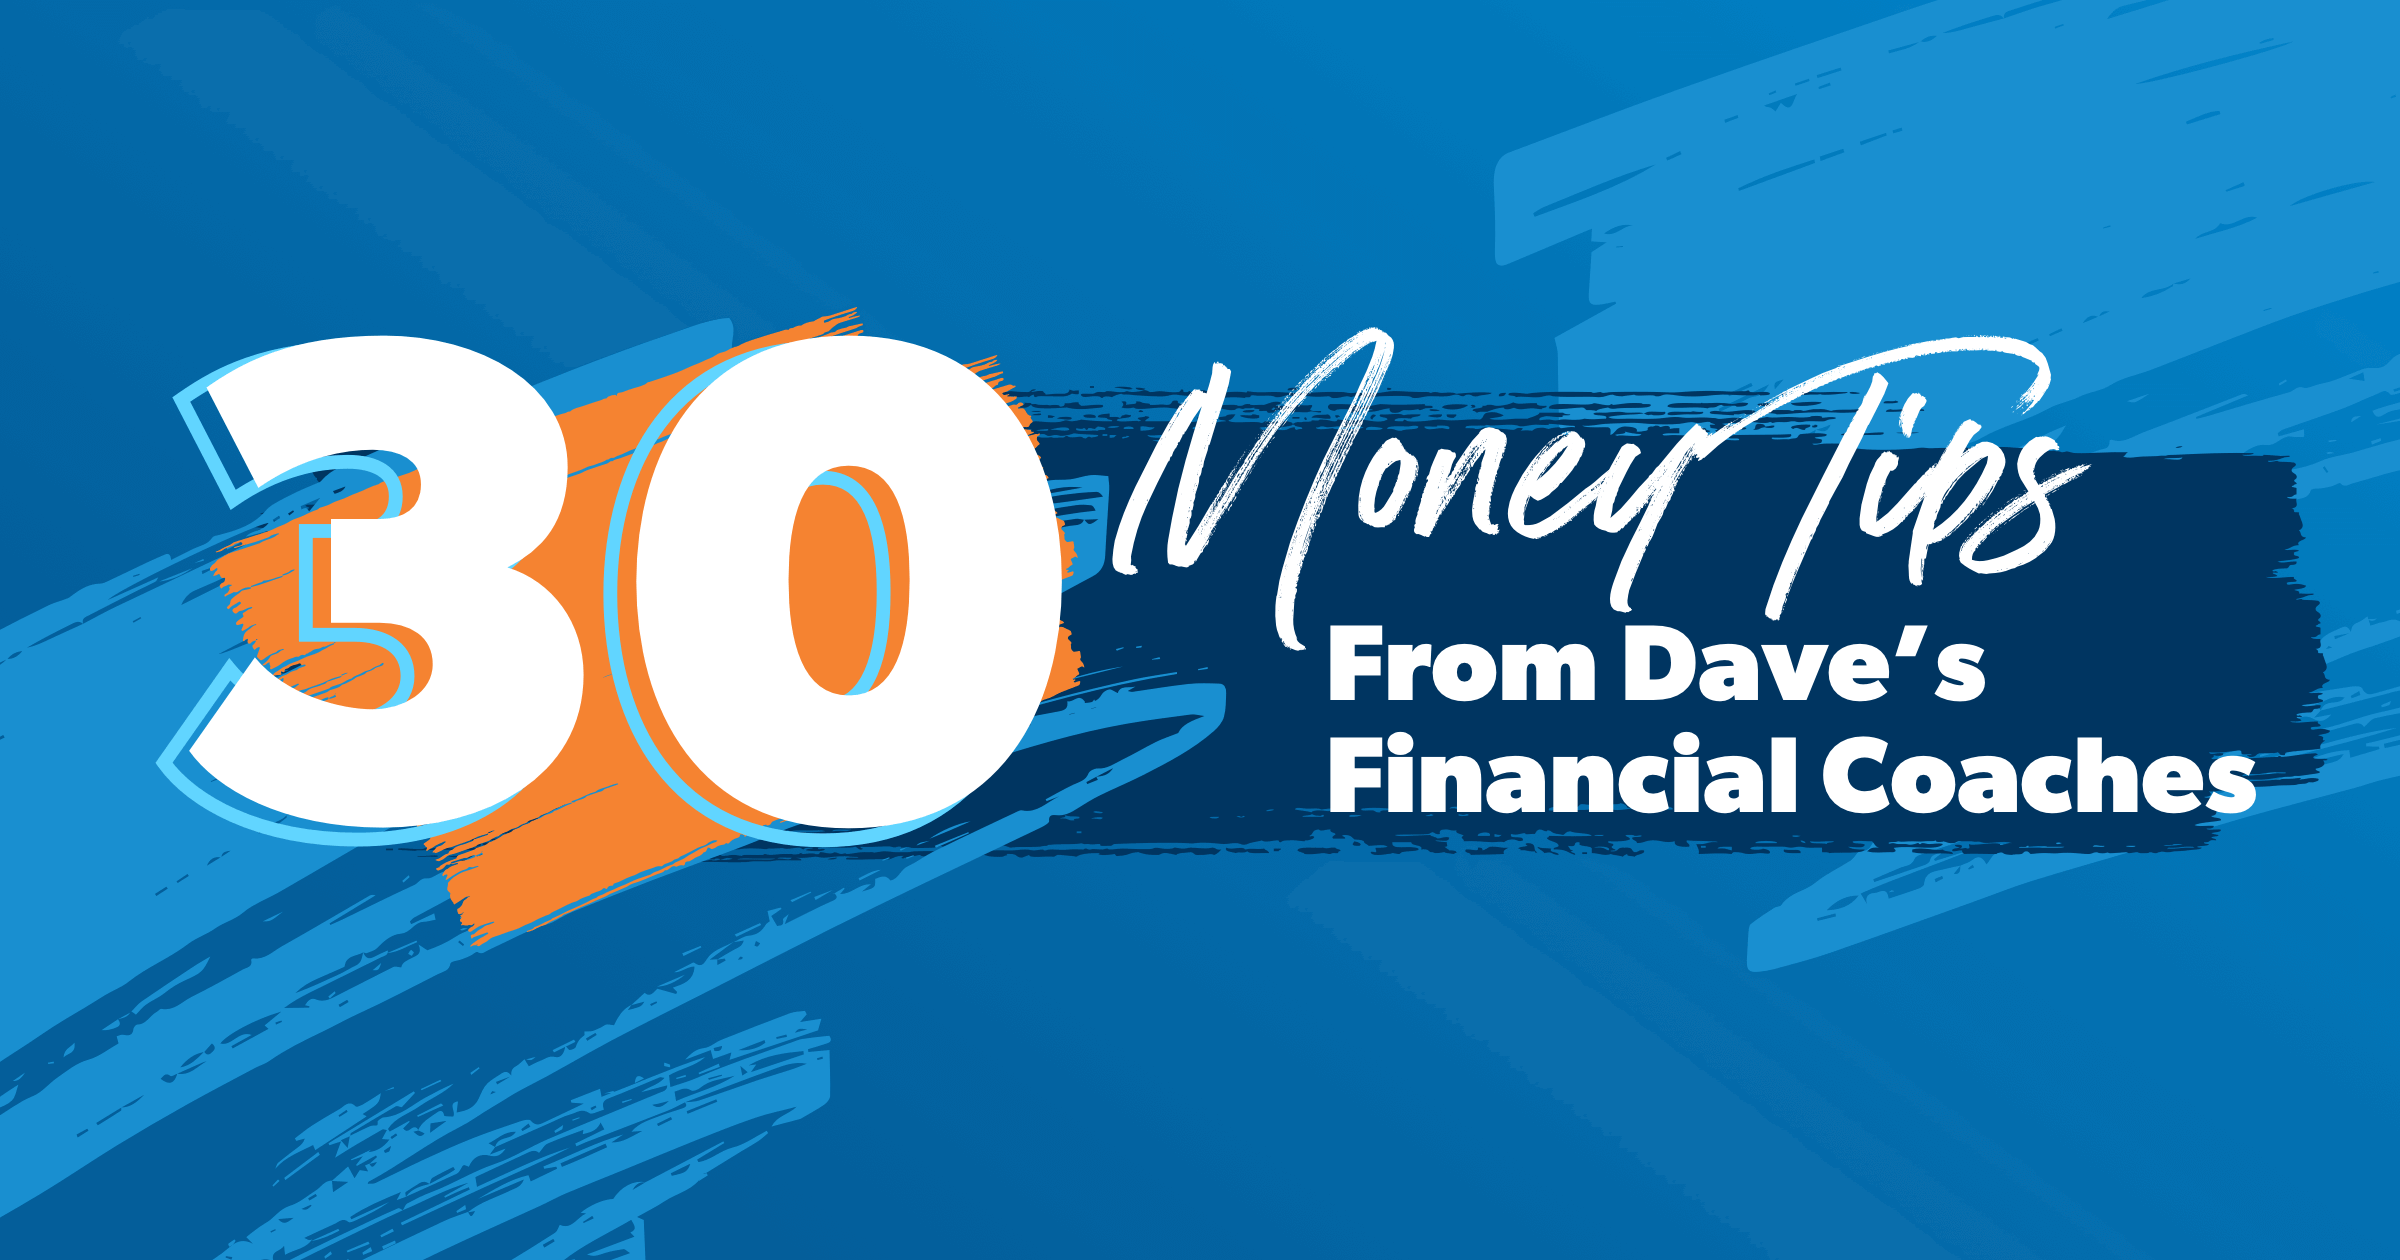 30 Money Tips from Dave's Financial Coaches